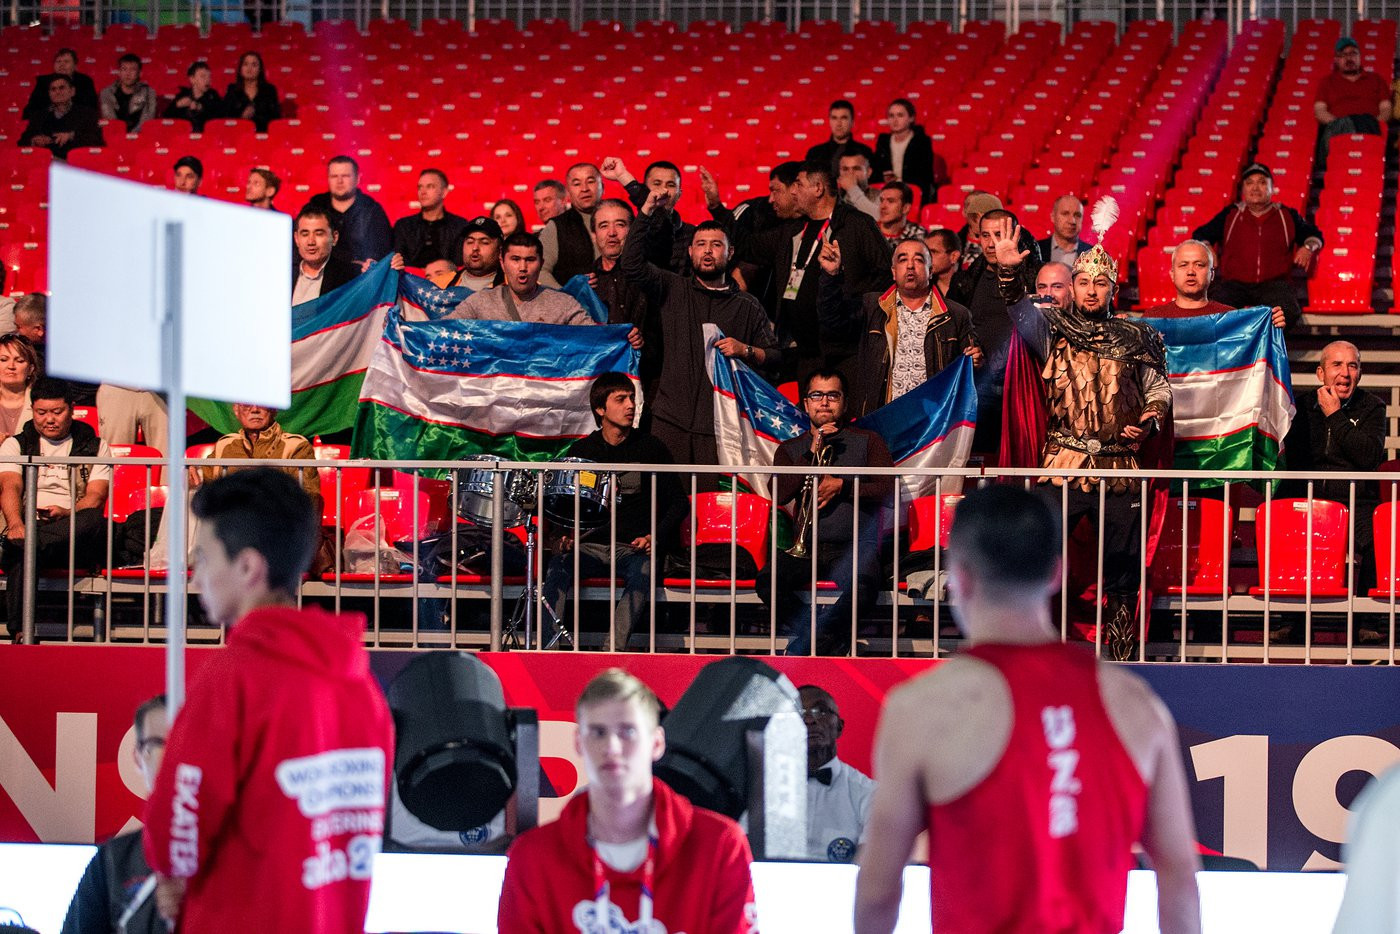 The unanimous result delighted the Uzbekistan support in the venue ©Yekaterinburg 2019